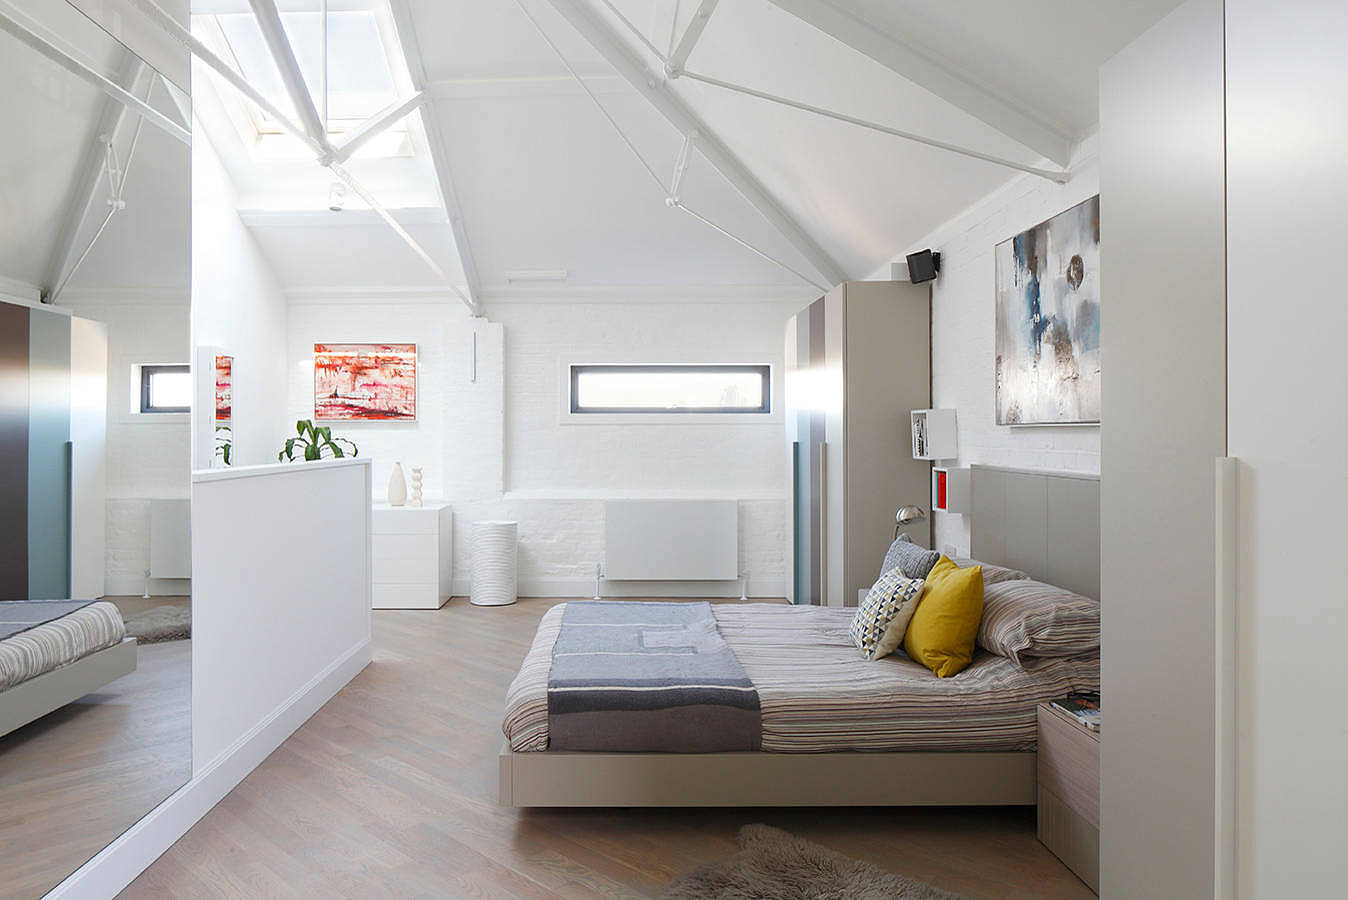 Penthouse in Peckham by Ensoul